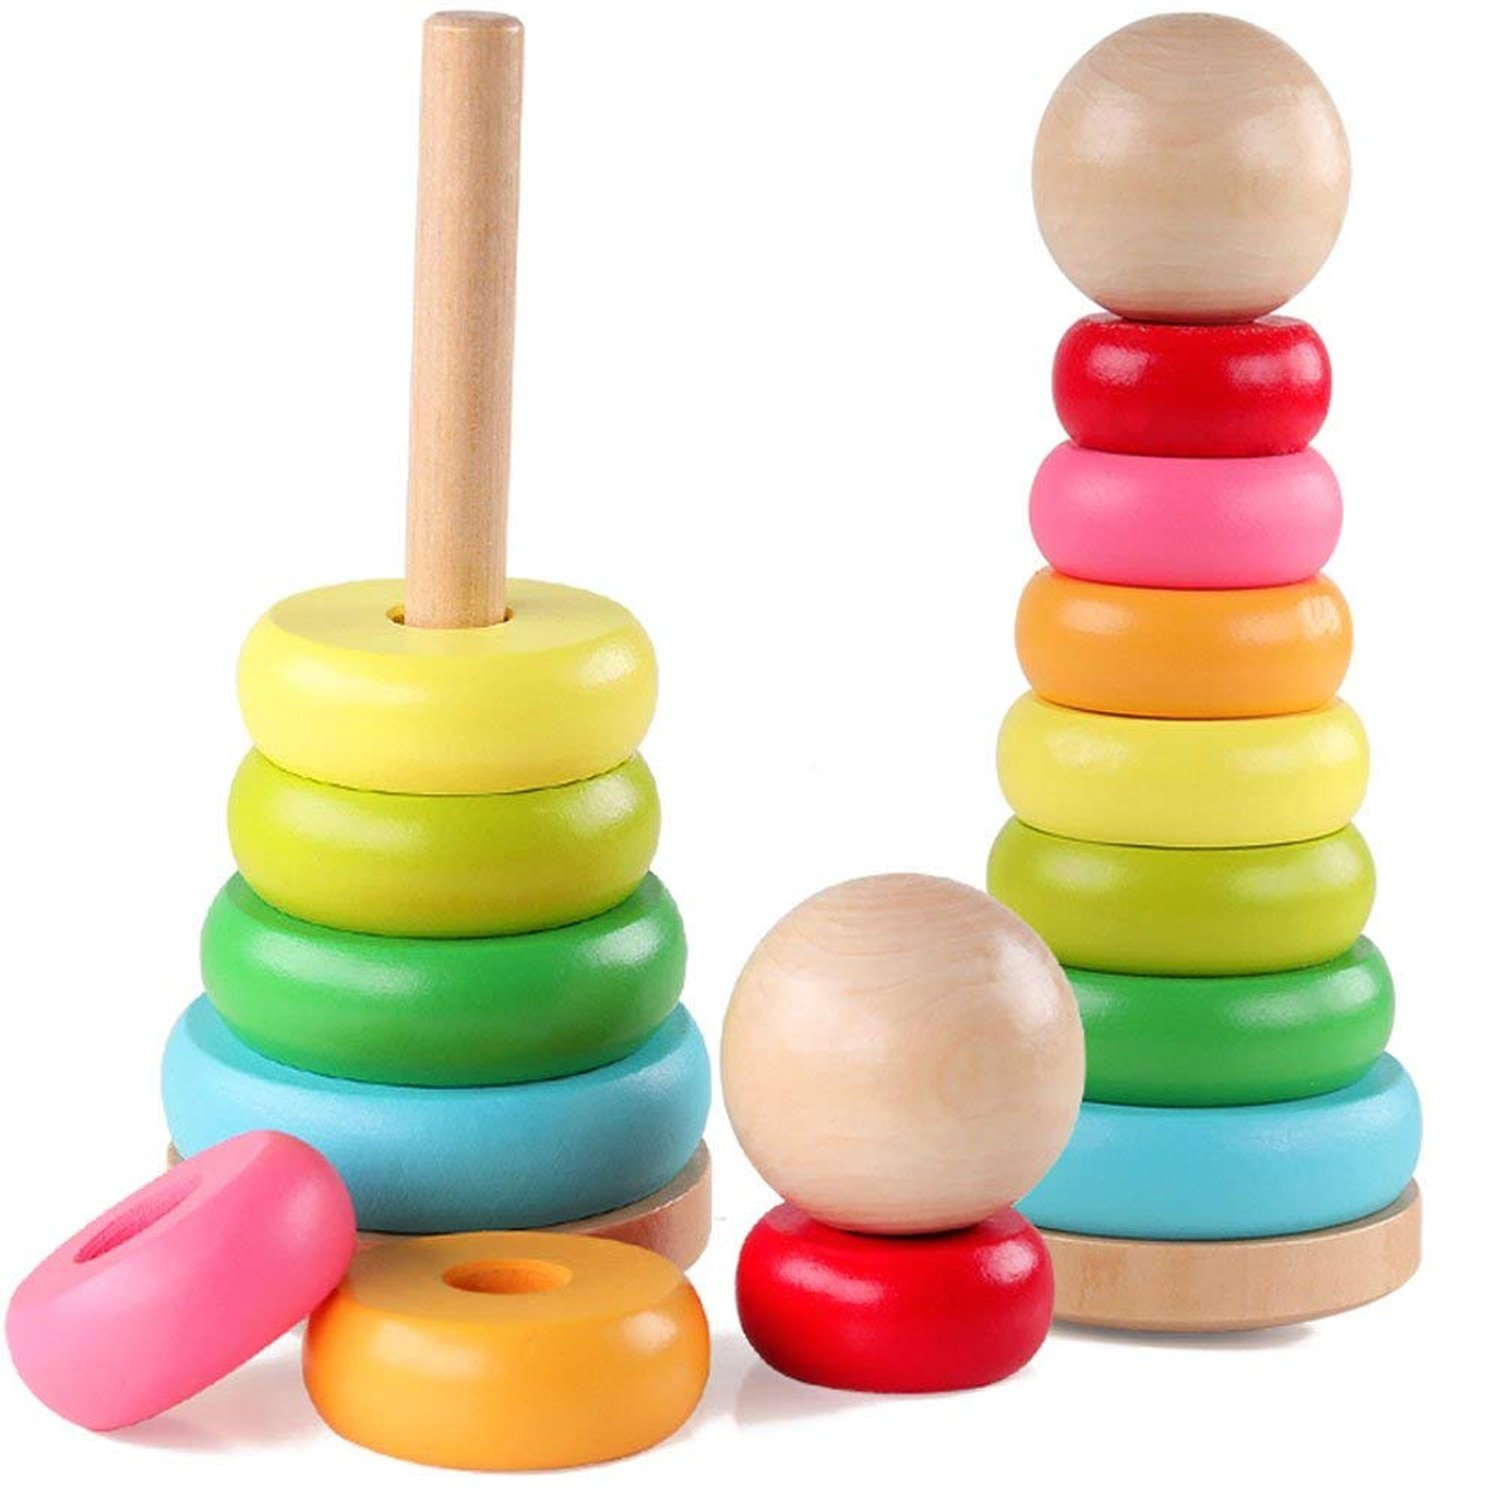 Jacootoys Rainbow Stacking Ring Sorting Wooden Blocks Educational Stacker Toys for Baby, Toddler